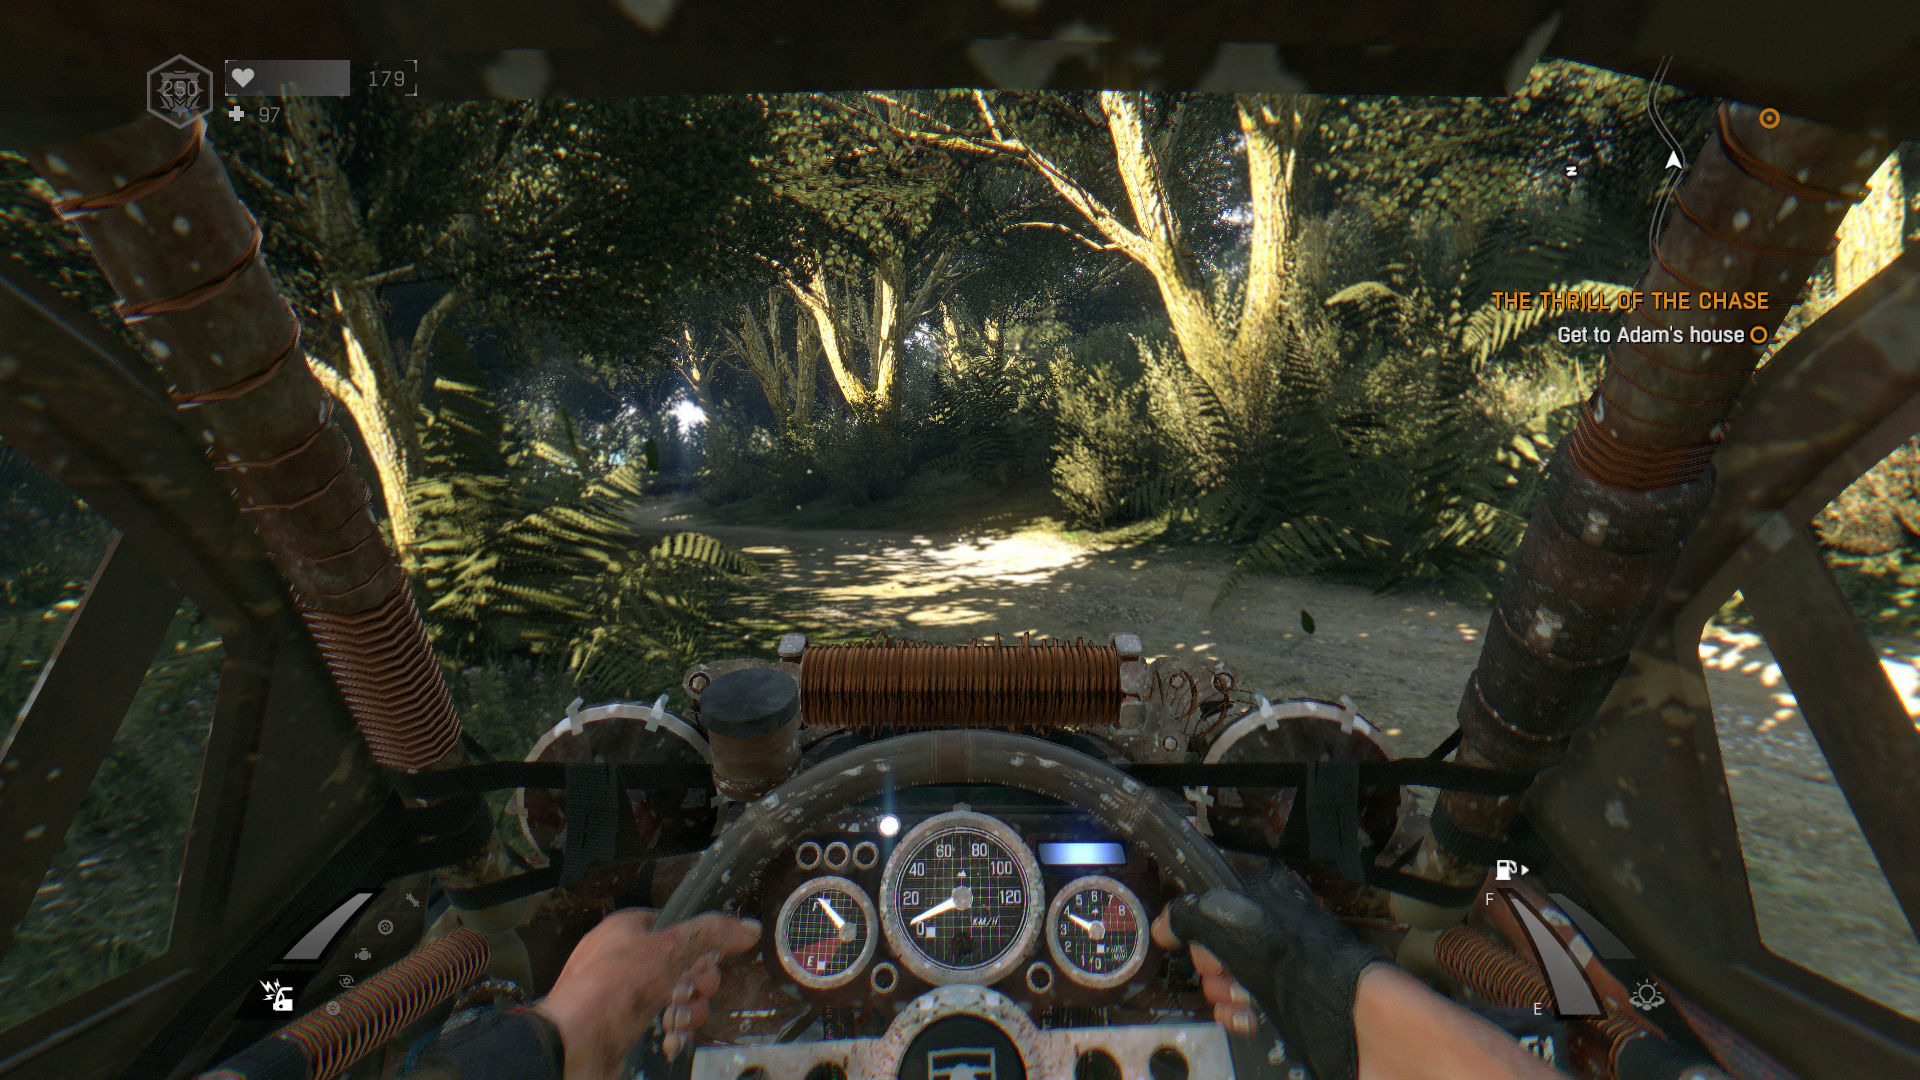 Driving a buggy through a country road